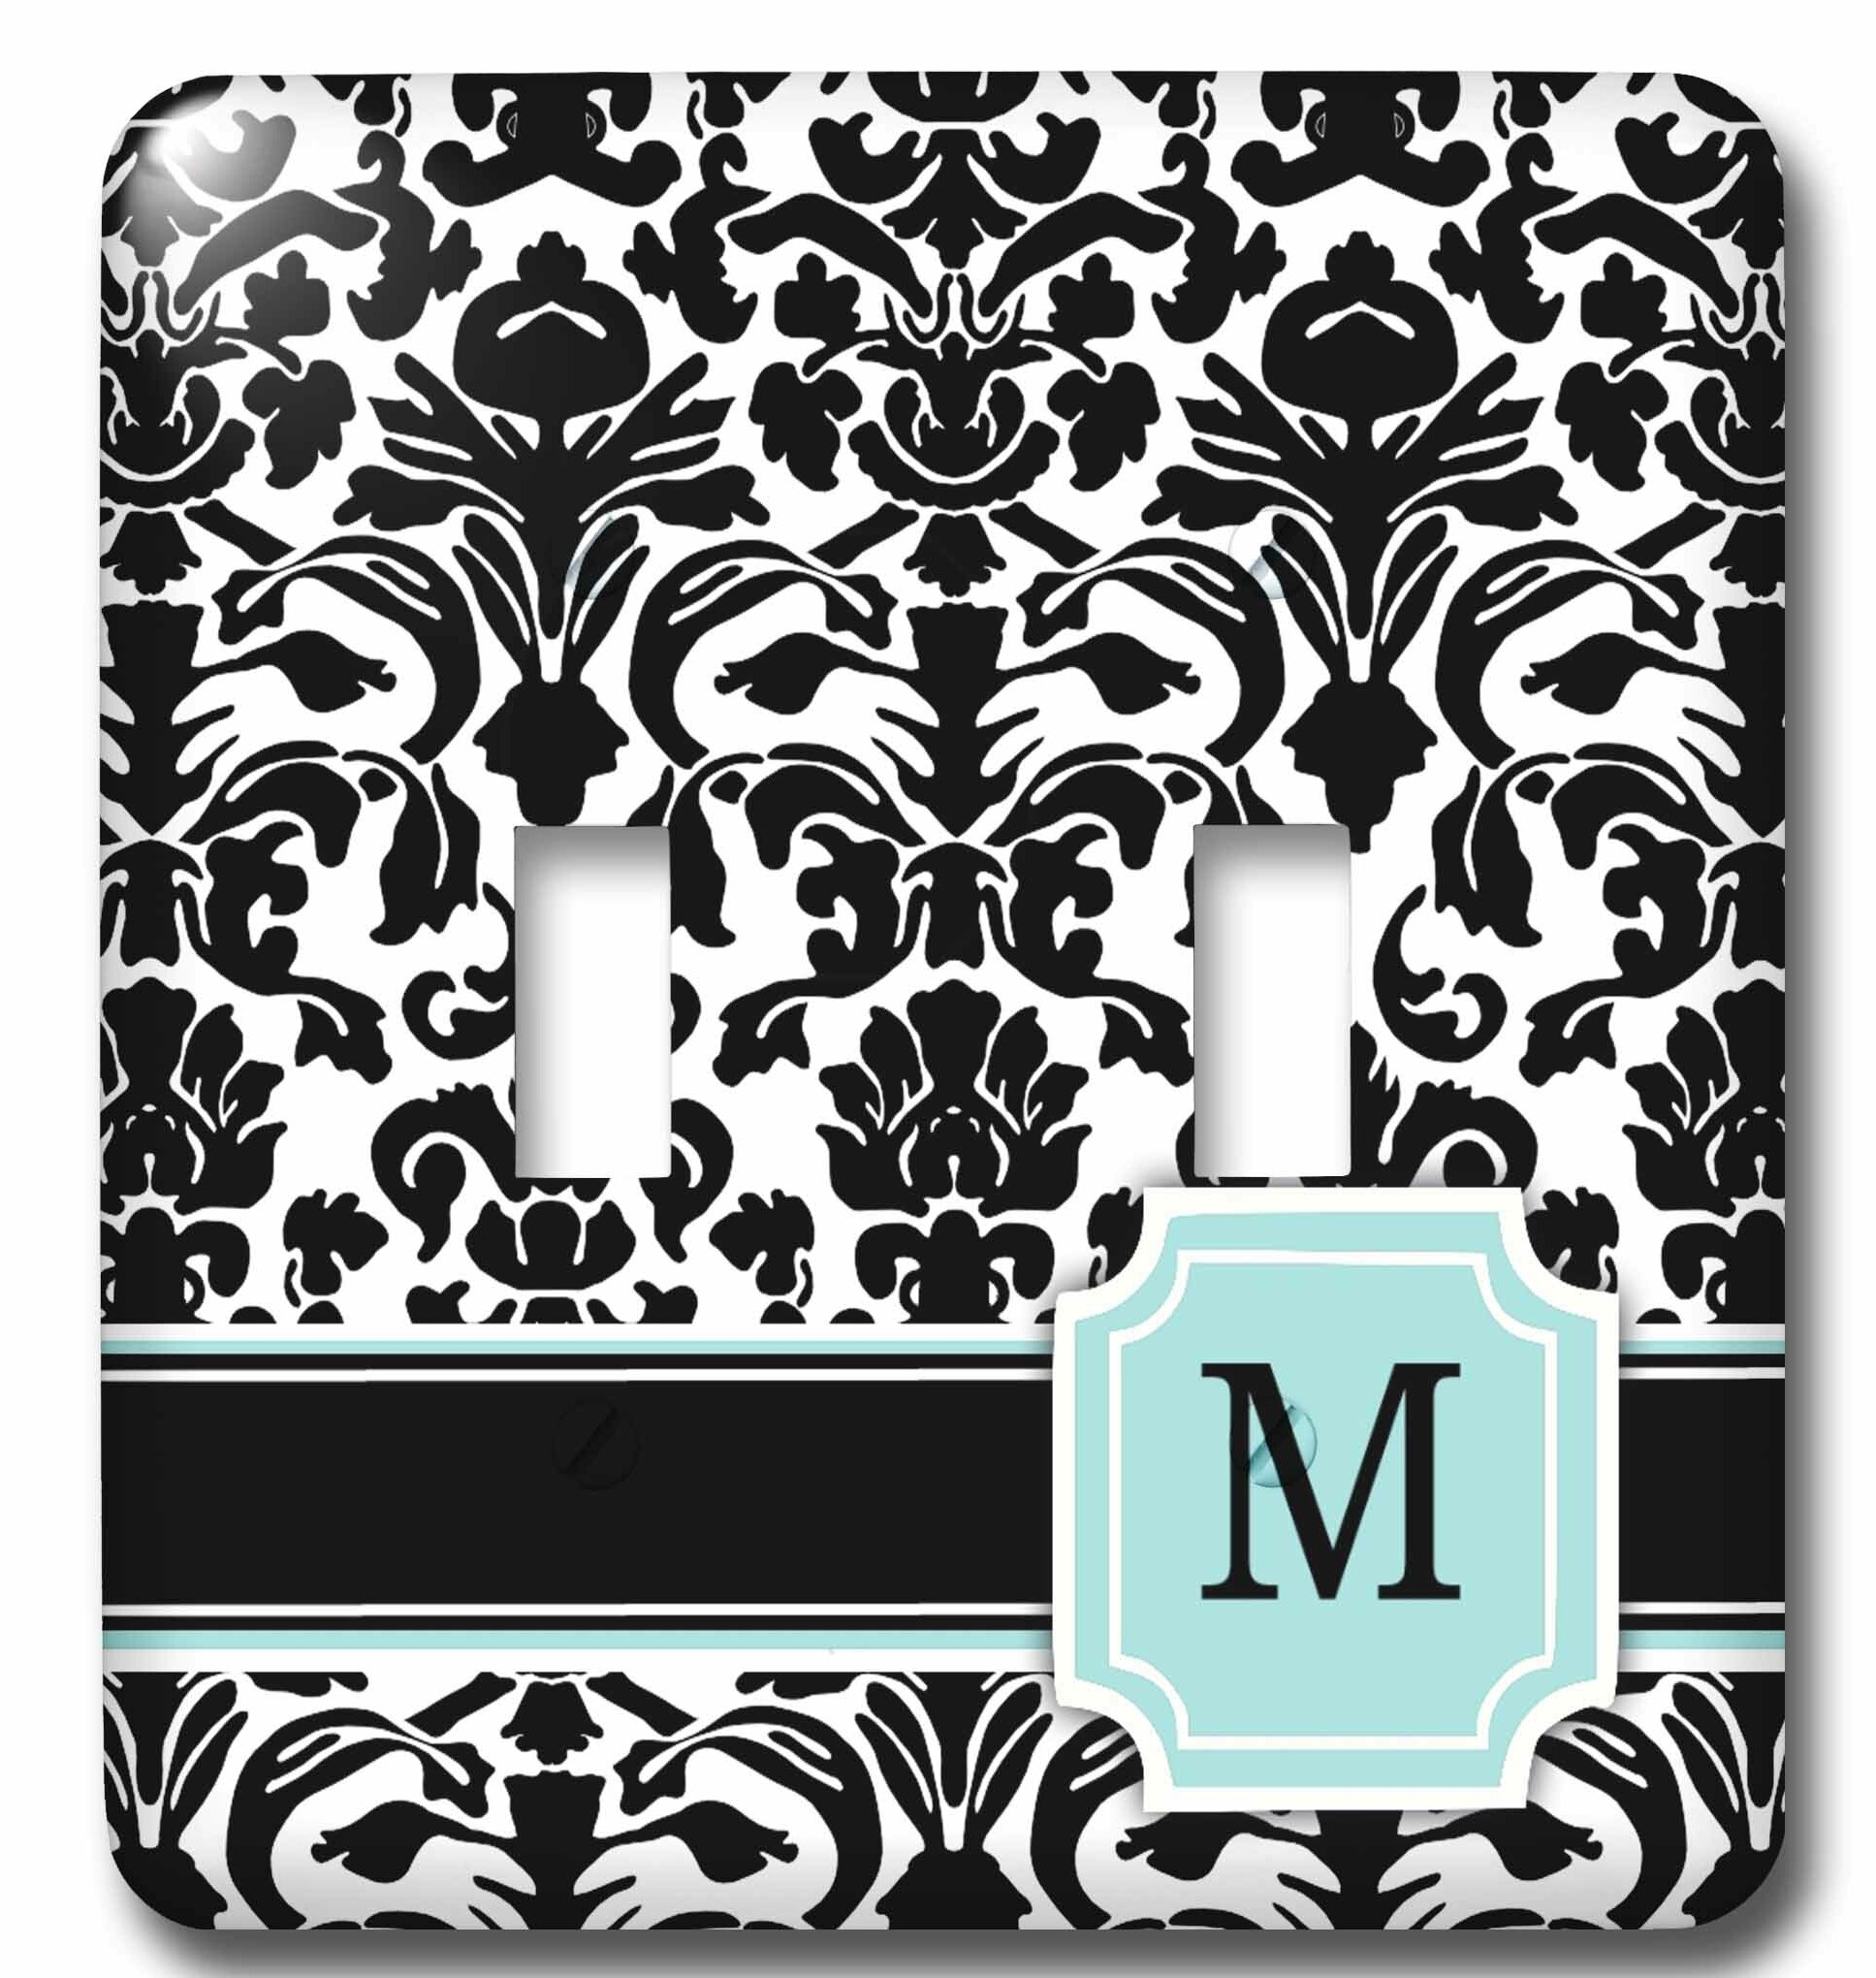 3drose Letter M Personal Monogrammed Damask Pattern 2 Gang Toggle Light Switch Wall Plate Wayfair